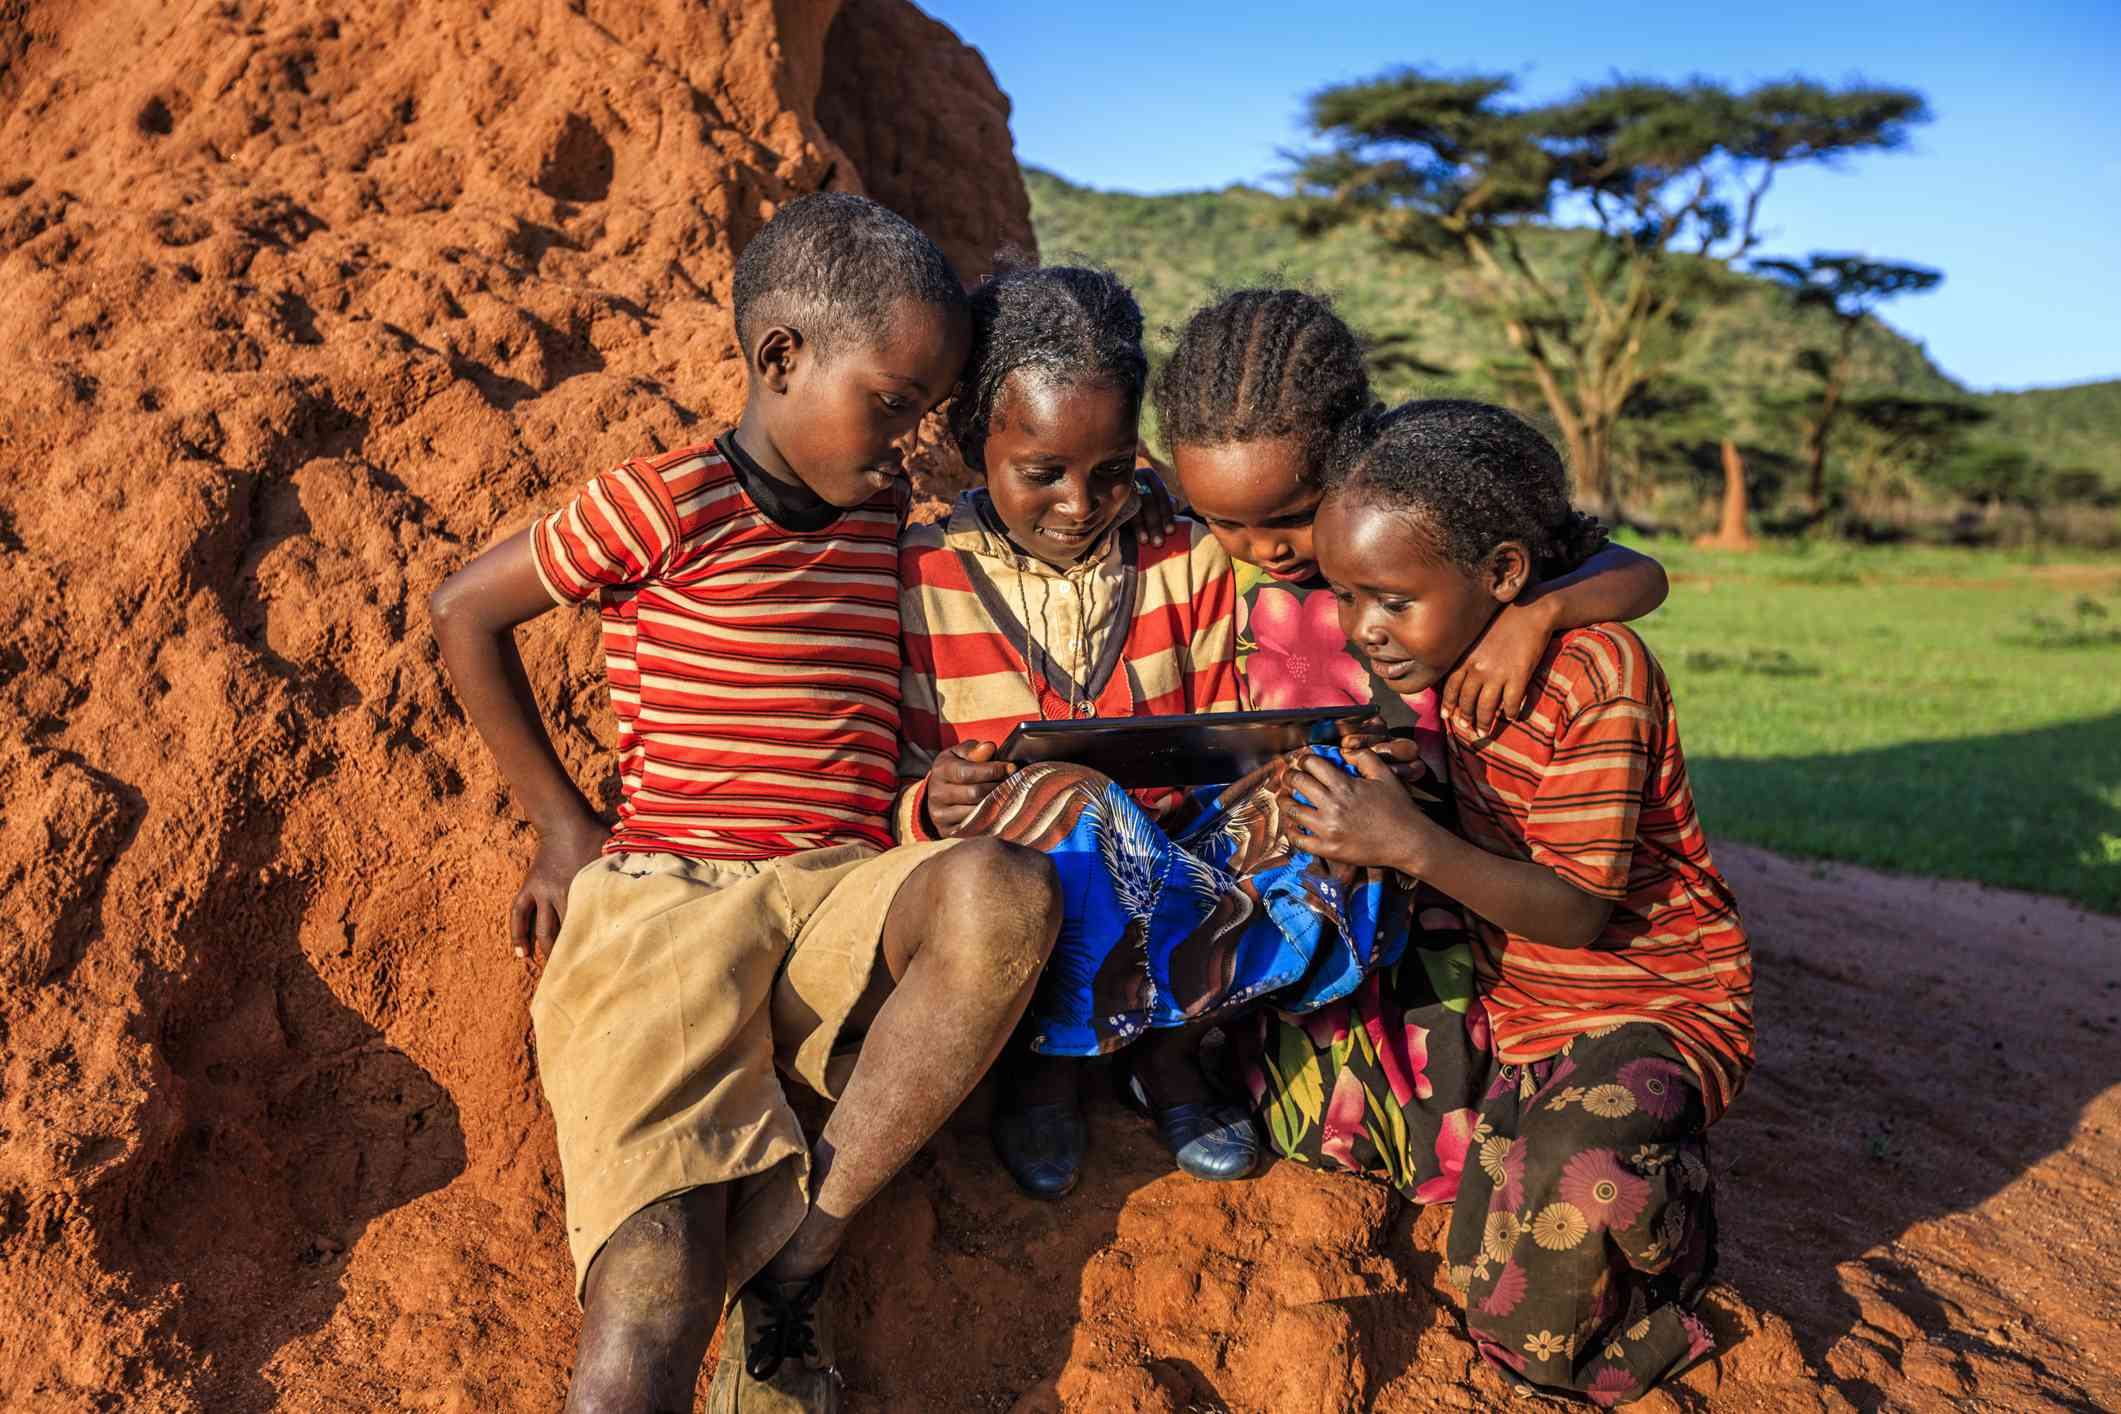 Children in East Africa using a tablet computer.